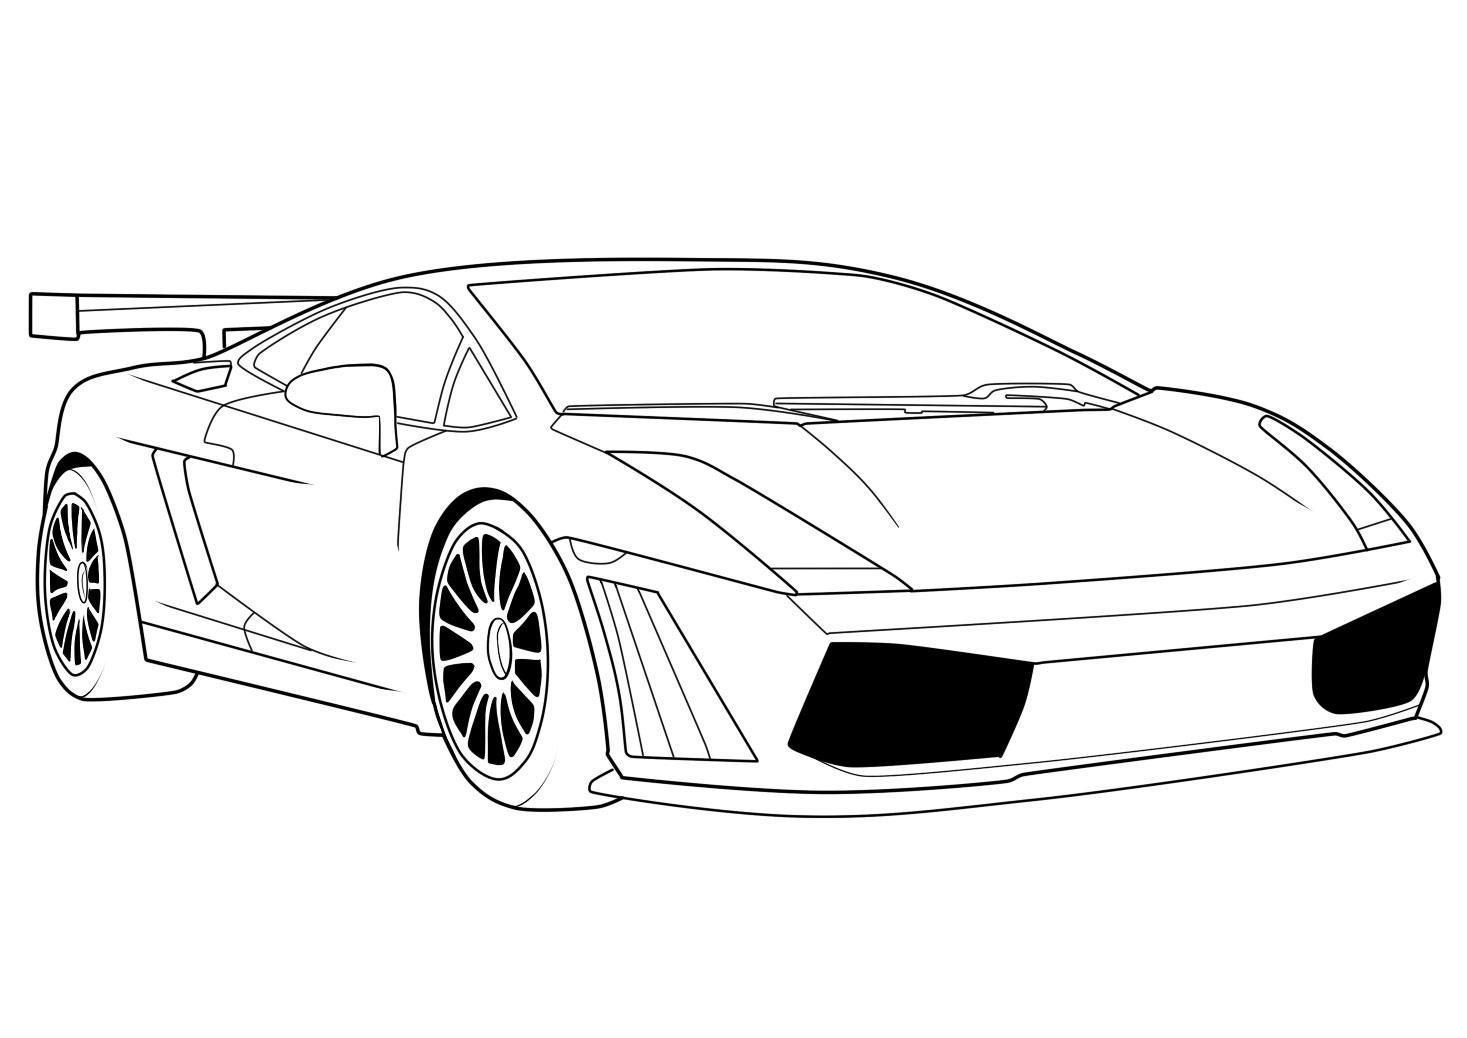 5 Tesla Coloring Page Design Your Own Car Coloring Page In 2020 Race Car Coloring Pages Best Lamborghini Cars Coloring Pages